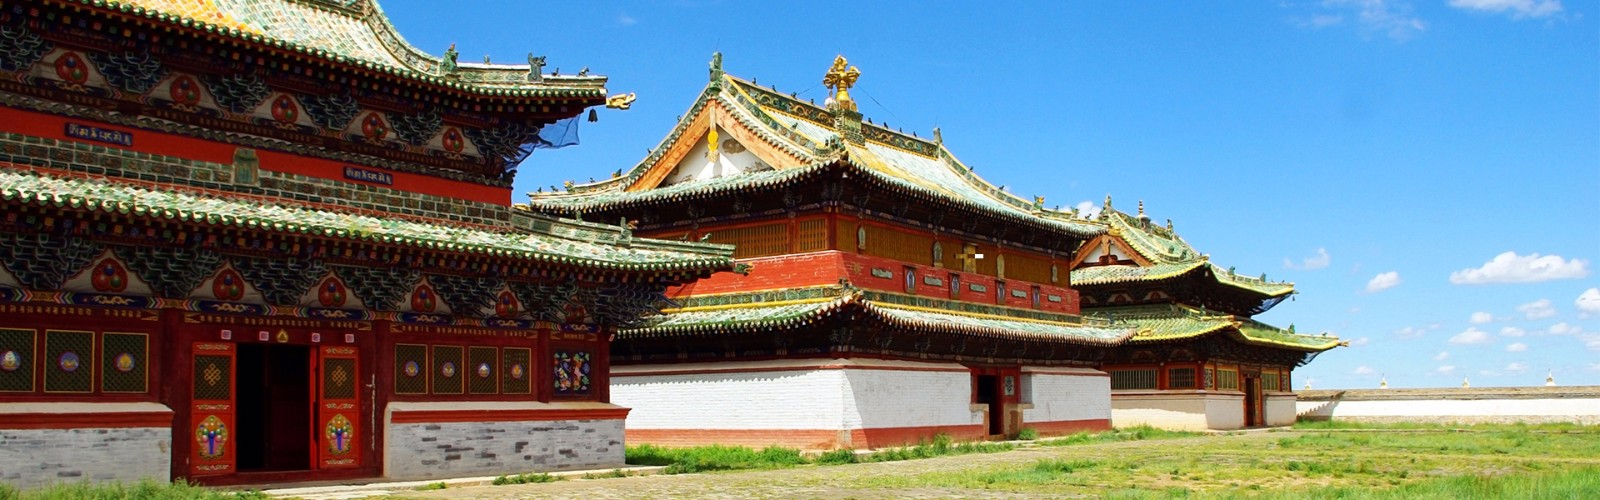 Mongolia and the Naadam Festival Tour | Wendy Wu Tours